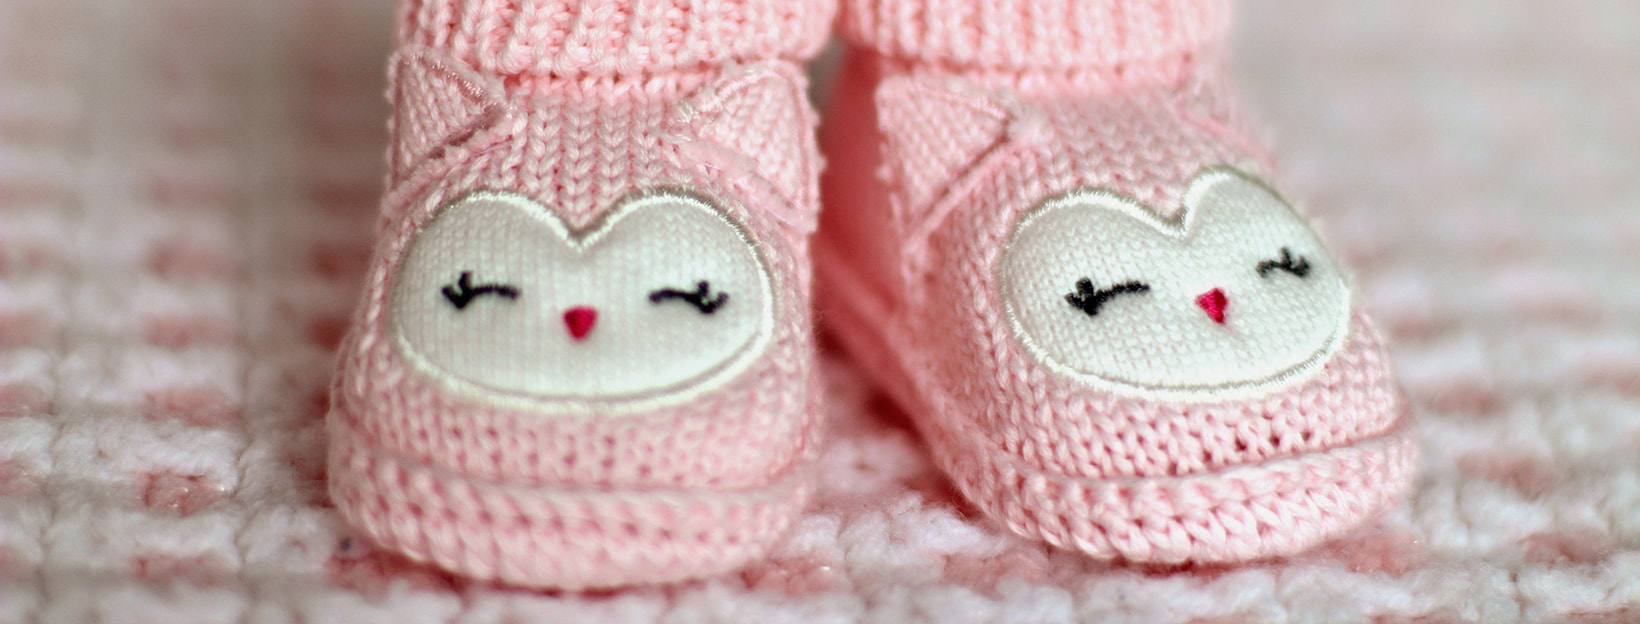 BANNER Canva - Close-up of Pink Baby Booties